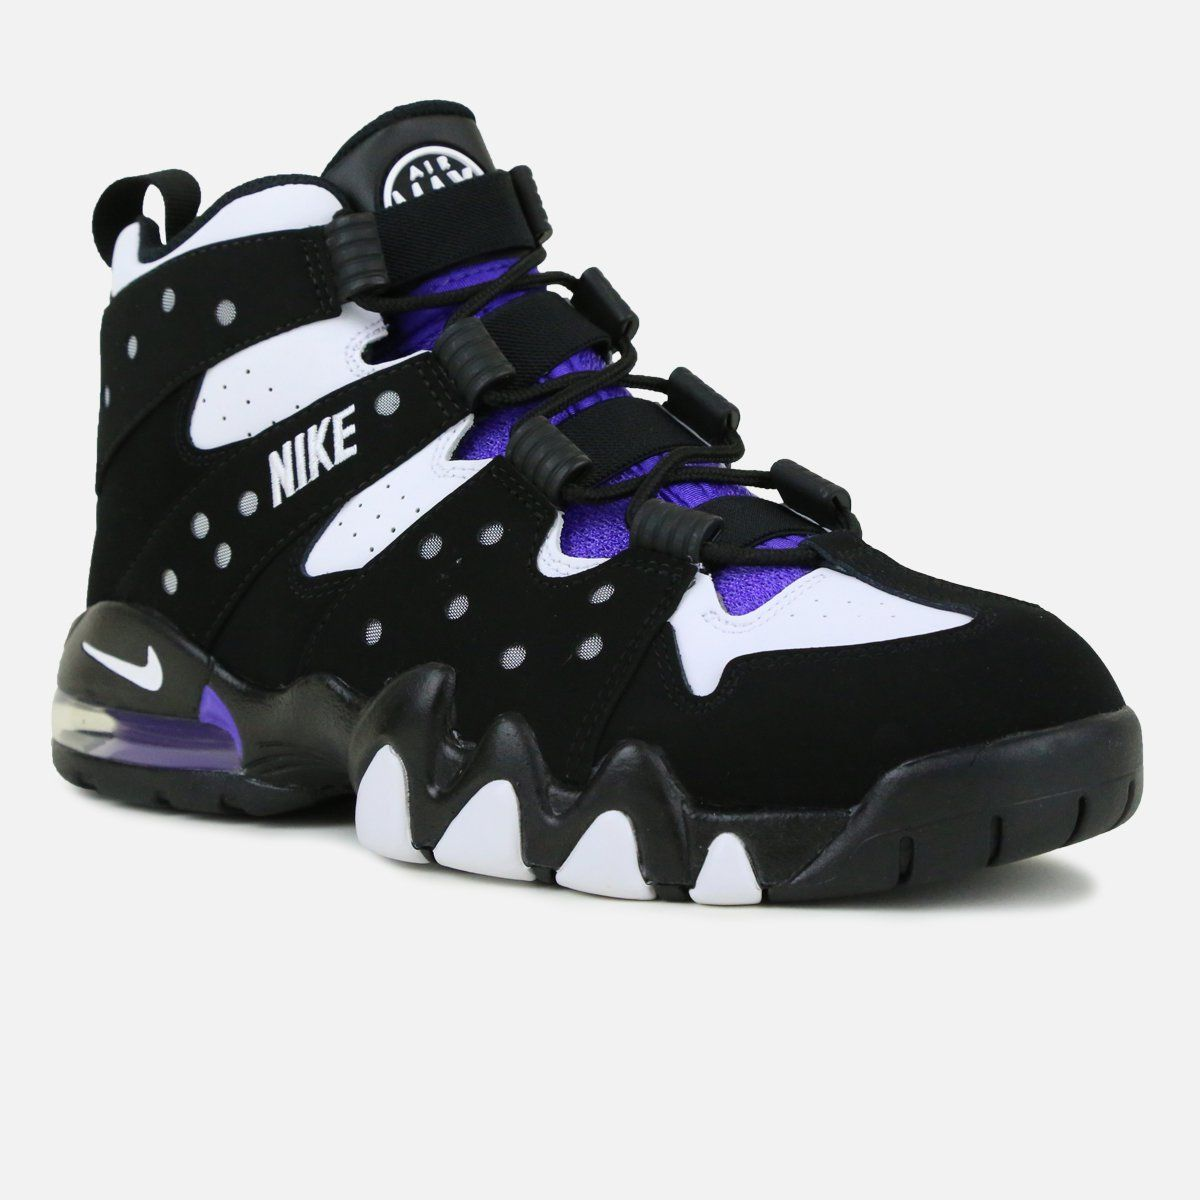 Nike Air Max 2 CB '94 - Black / Pure Purple-White - Images